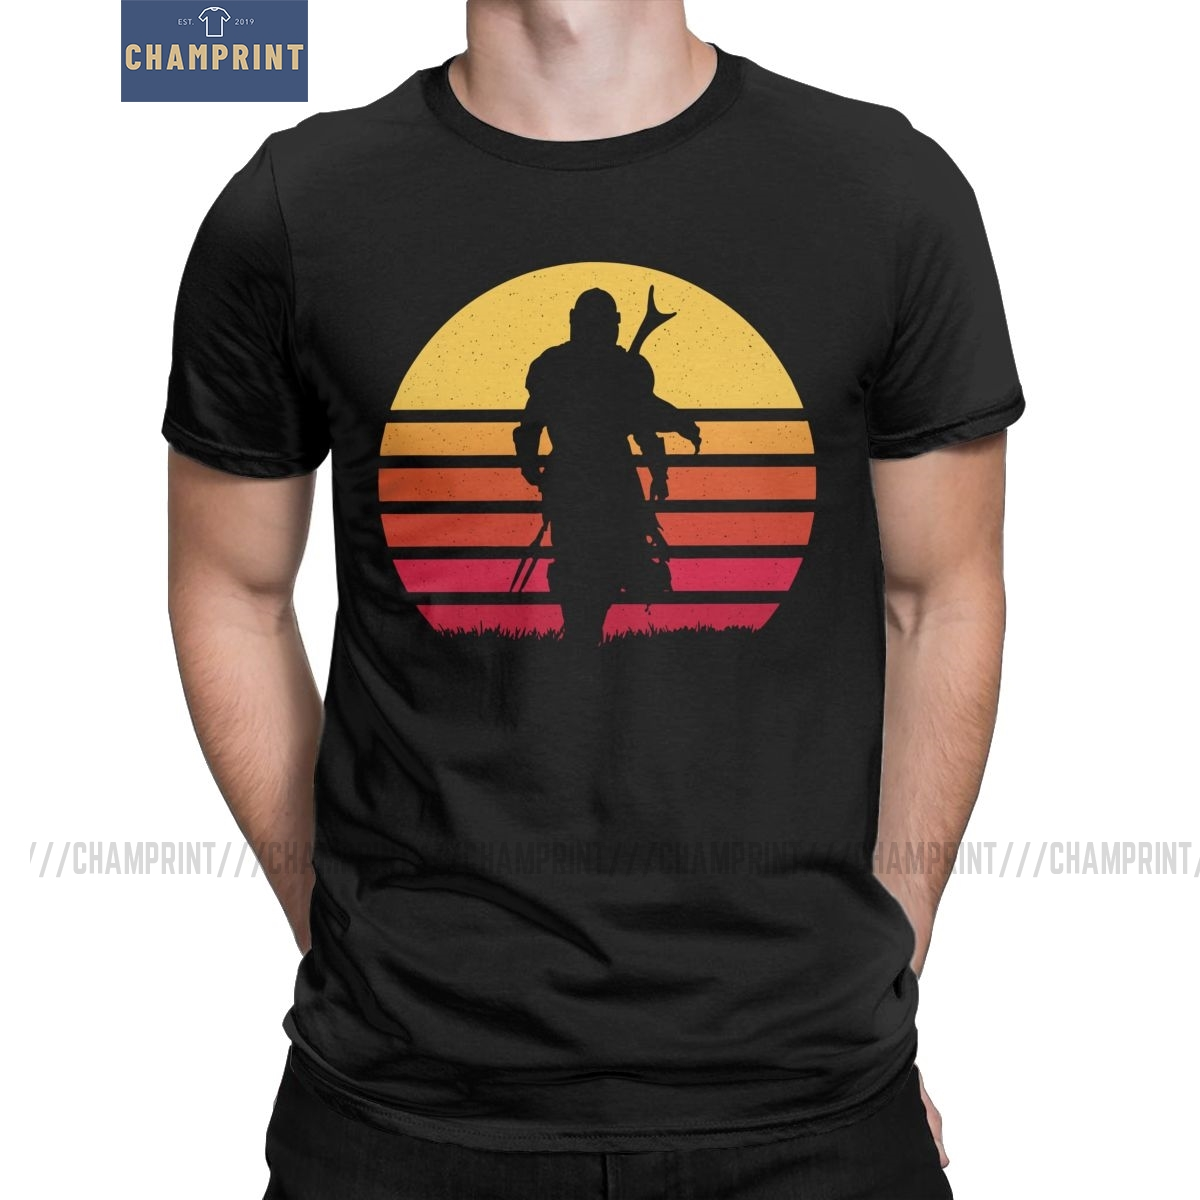 Mando Retro The Mandalorian T-Shirt Men Baby Yoda Star Wars Seagulls Jedi Fett Cotton Tees Short Sleeve T Shirts Plus Size